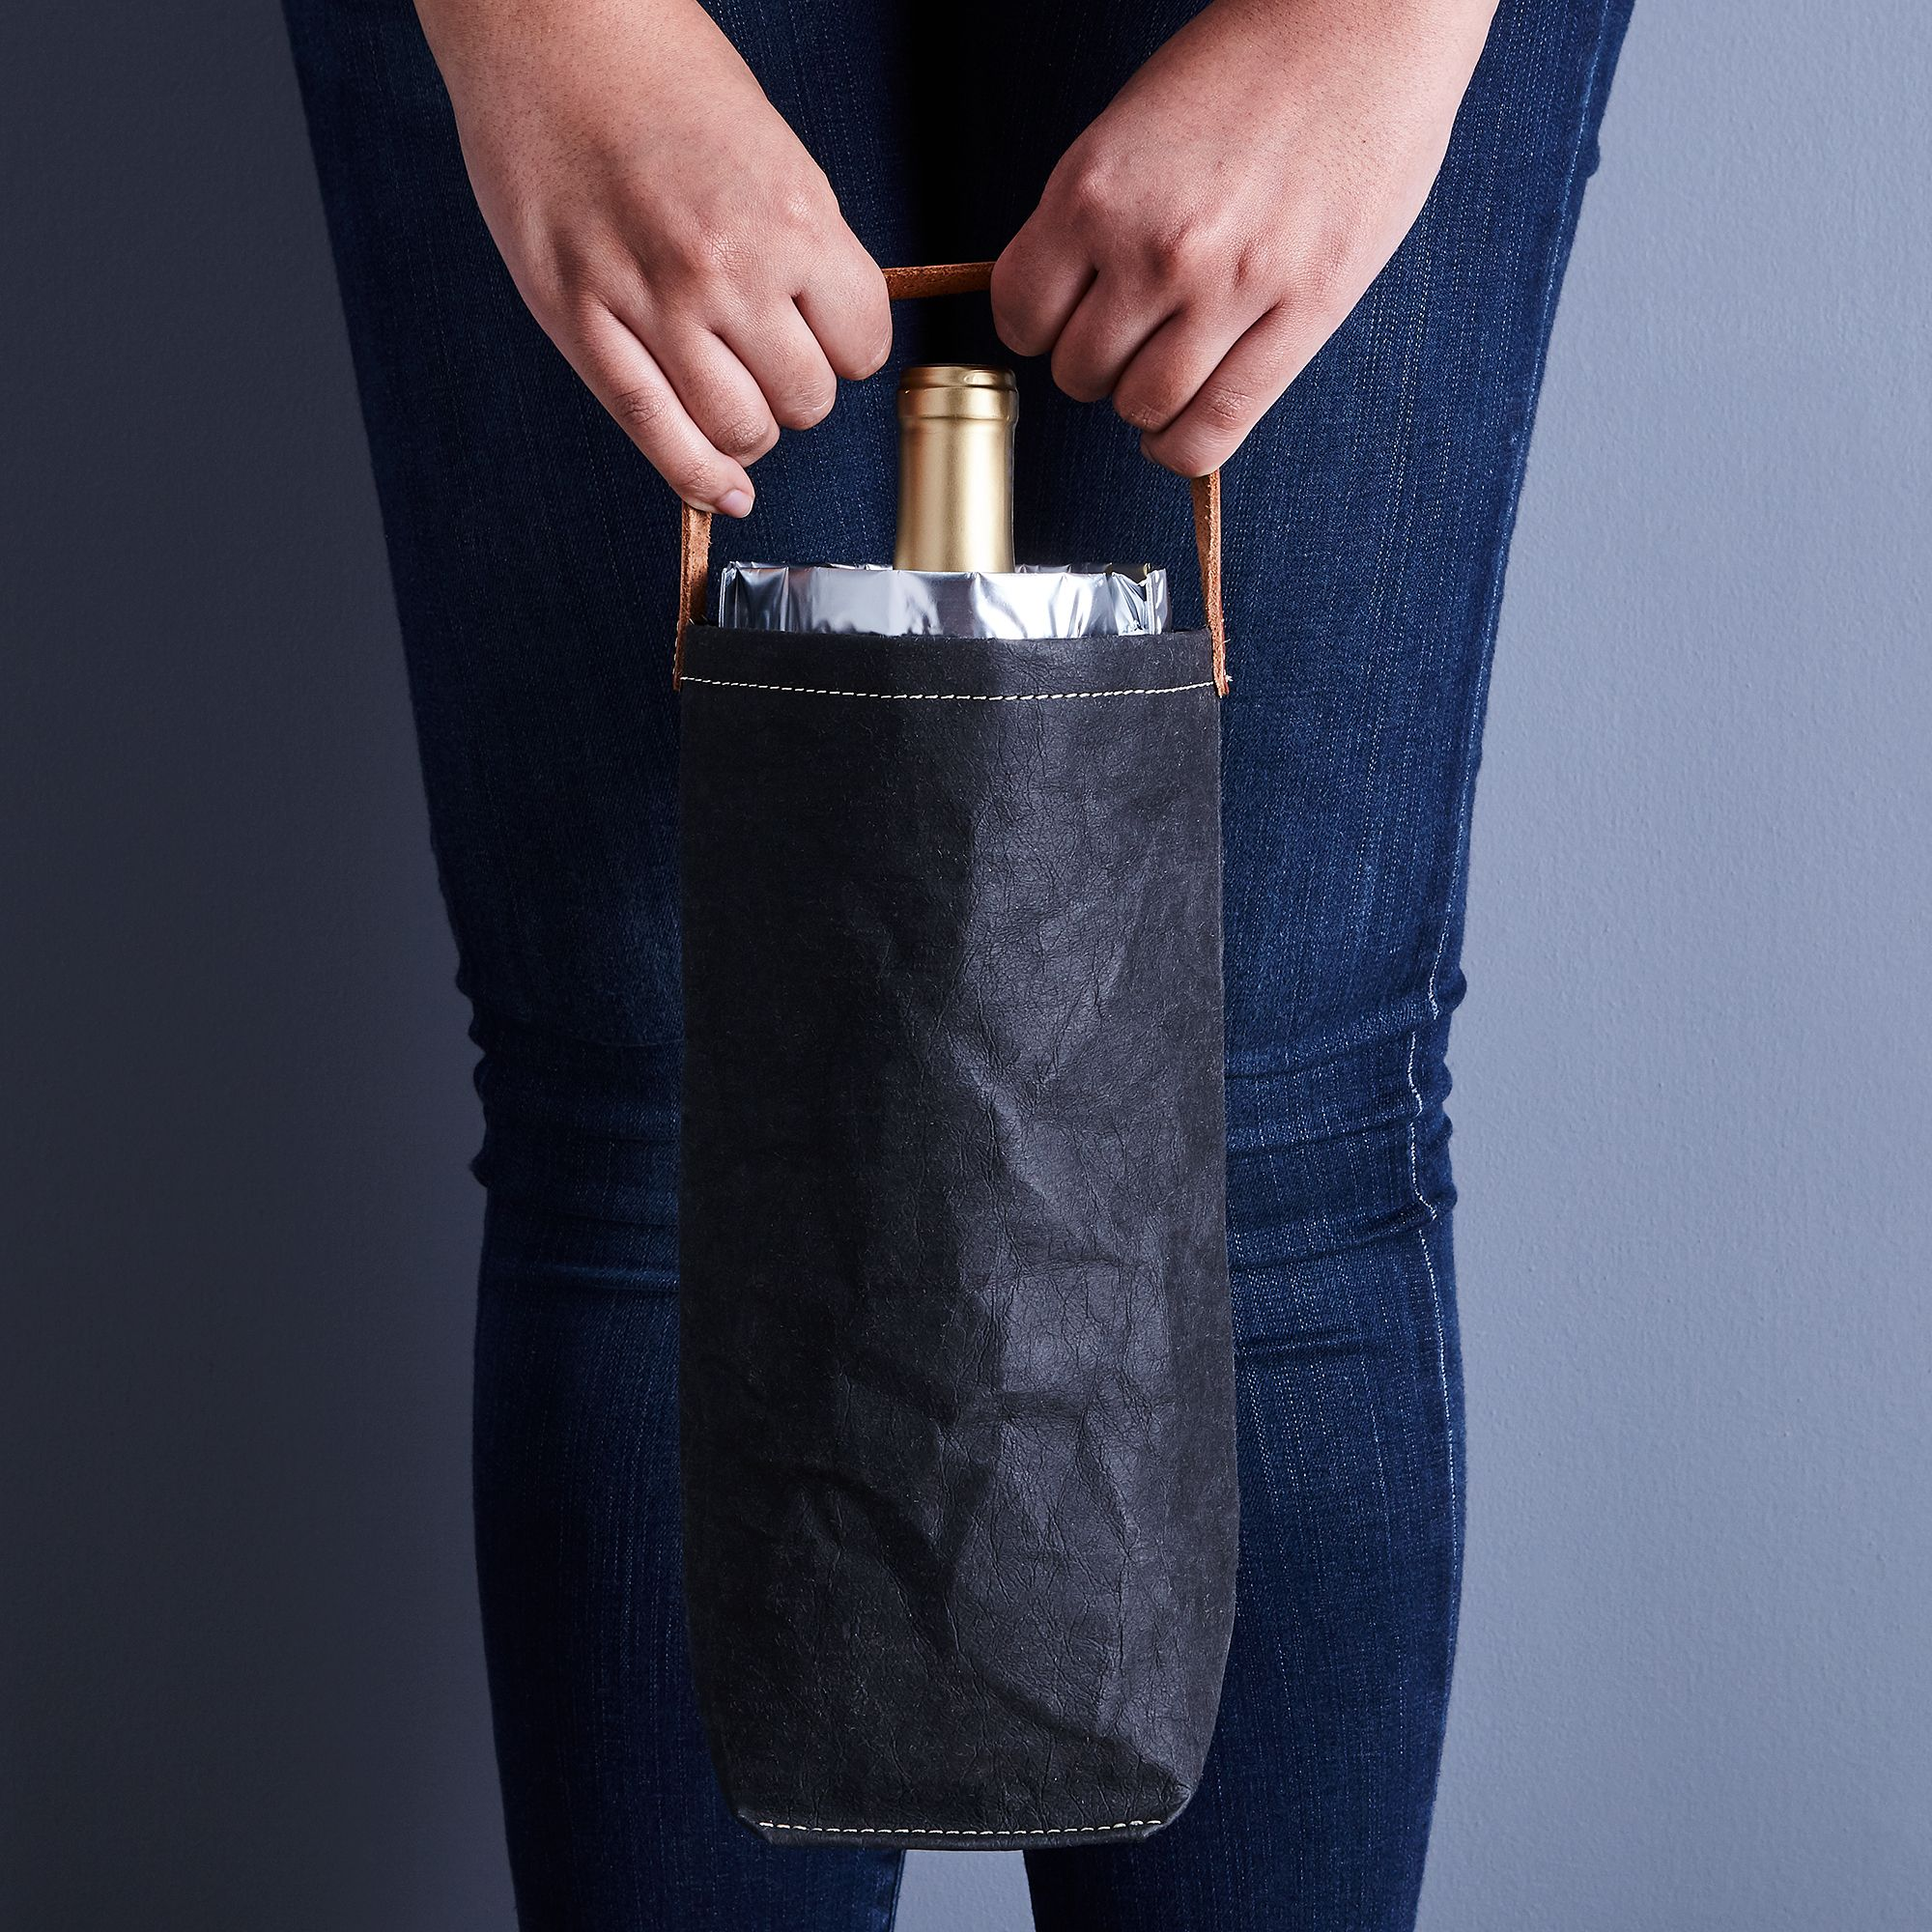 hands holding black canvas wine bag with bottle of wine